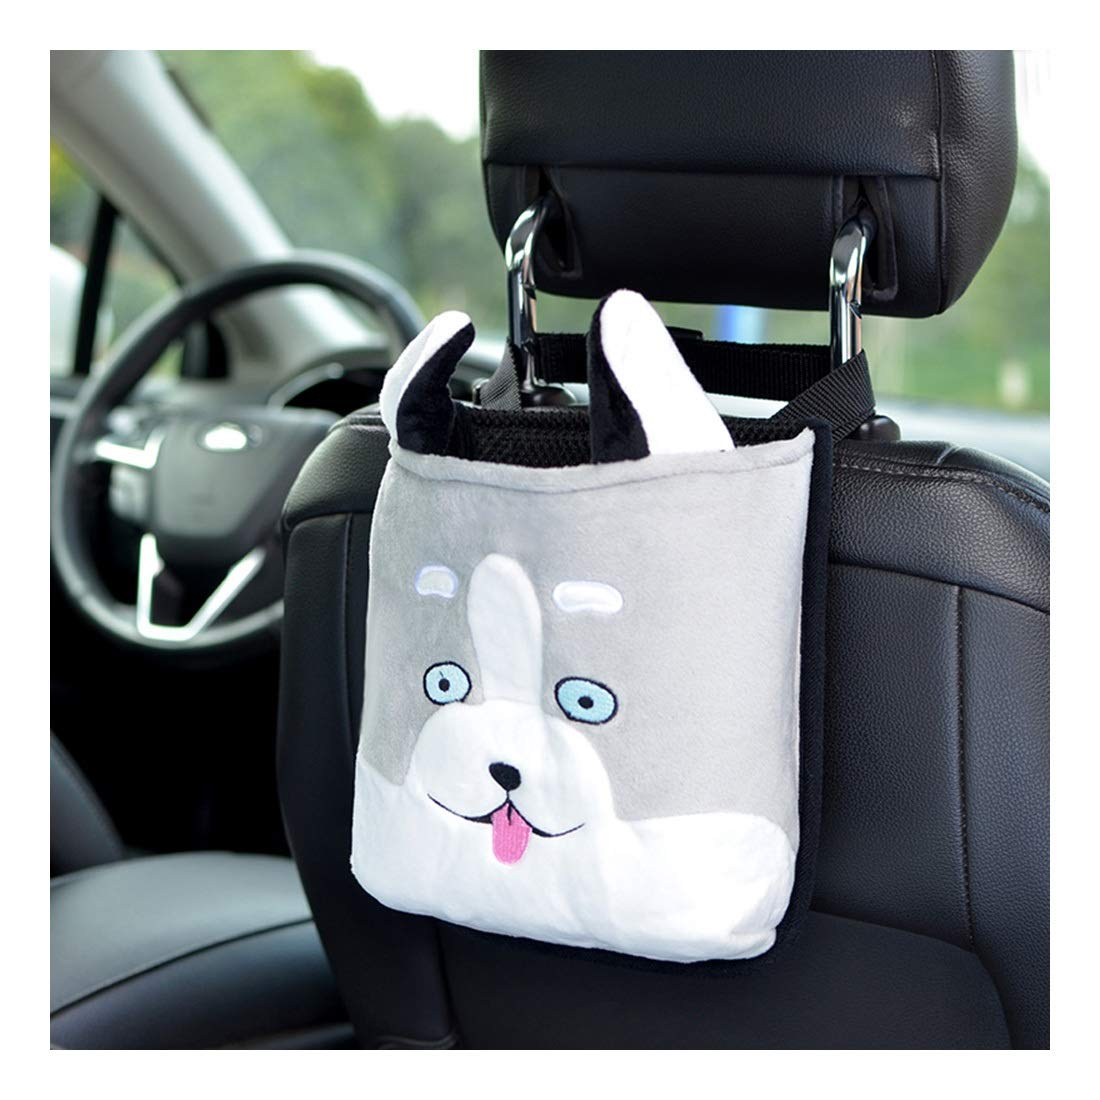 ZYLE Car Rear Seat Storage Bag Fixing Bag Accessories Cartoon Animal Embroidery Storage Bag (Color : D)